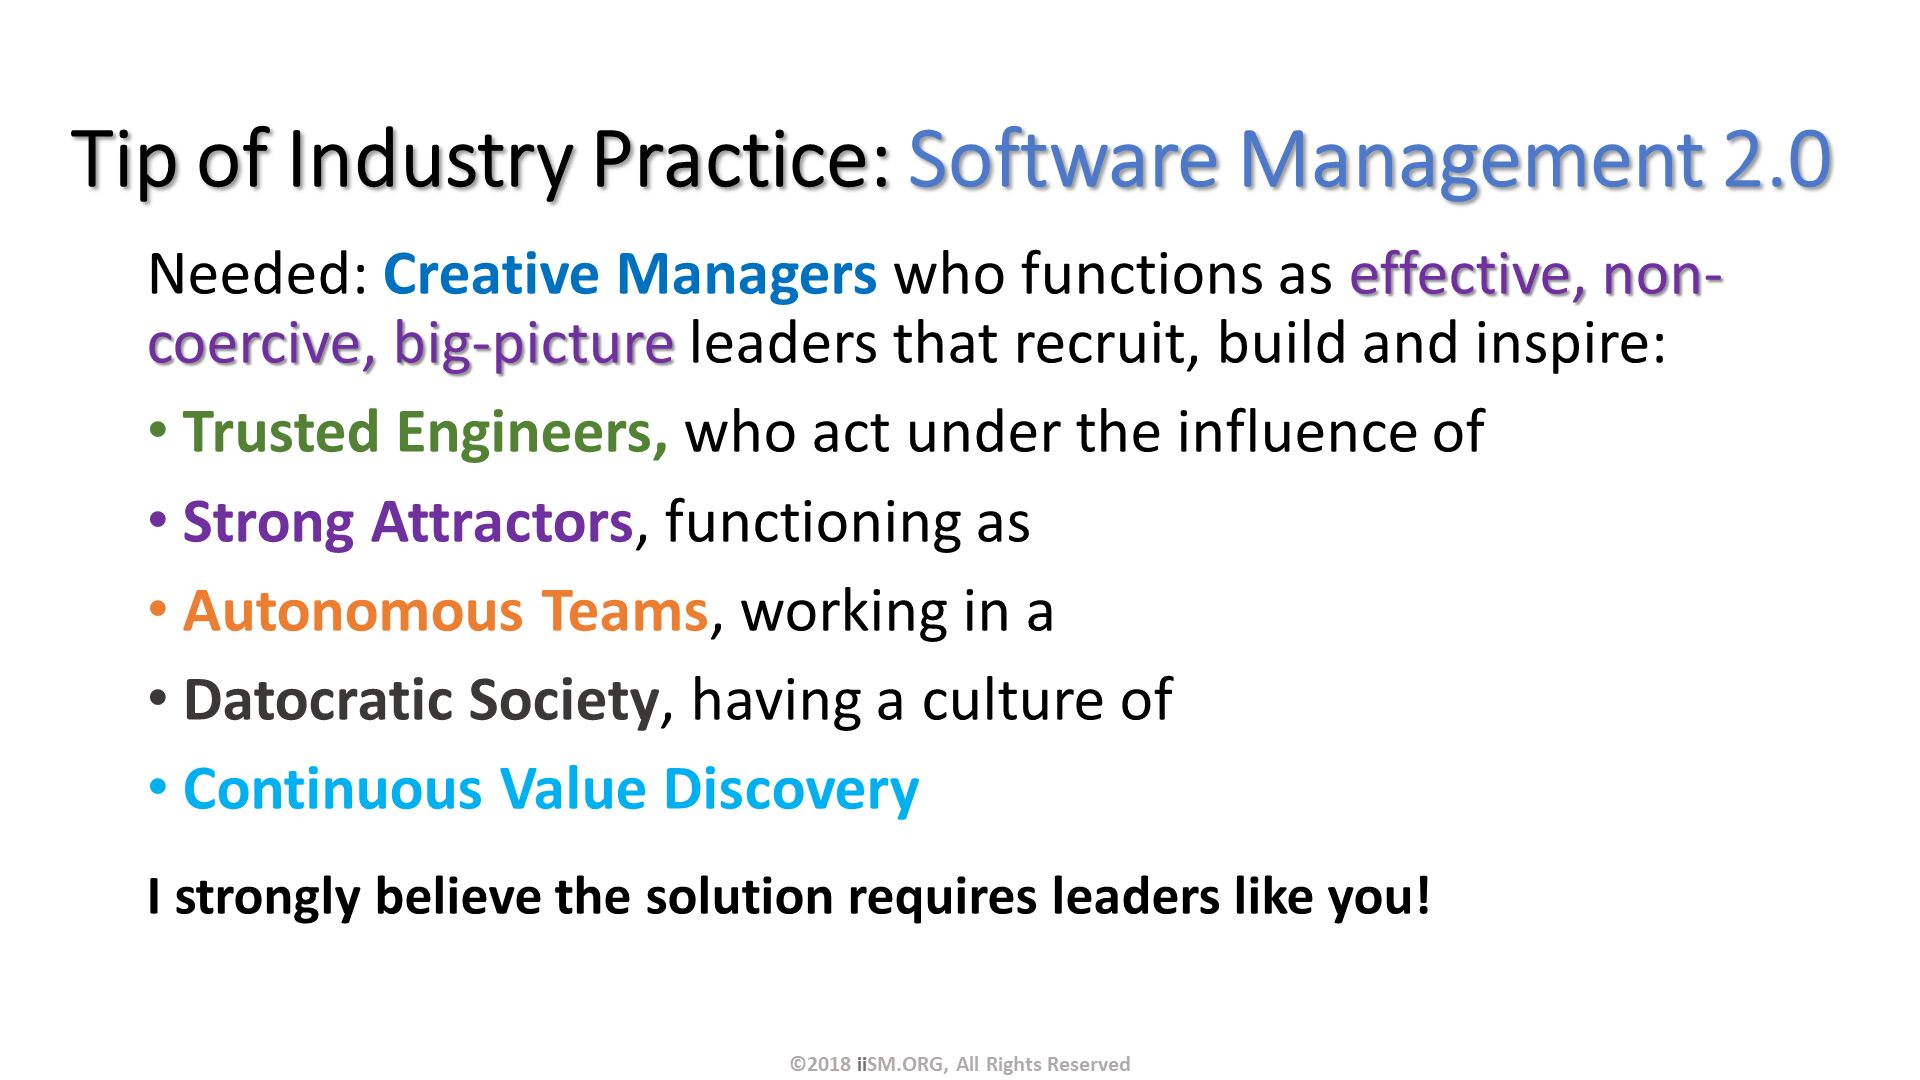 Tip of Industry Practice: Software Management 2.0. Needed: Creative Managers who functions as effective, non-coercive, big-picture leaders that recruit, build and inspire: Trusted Engineers, who act under the influence of Strong Attractors, functioning as  Autonomous Teams, working in a Datocratic Society, having a culture of Continuous Value Discovery  I strongly believe the solution requires leaders like you!. ©2018 iiSM.ORG, All Rights Reserved.